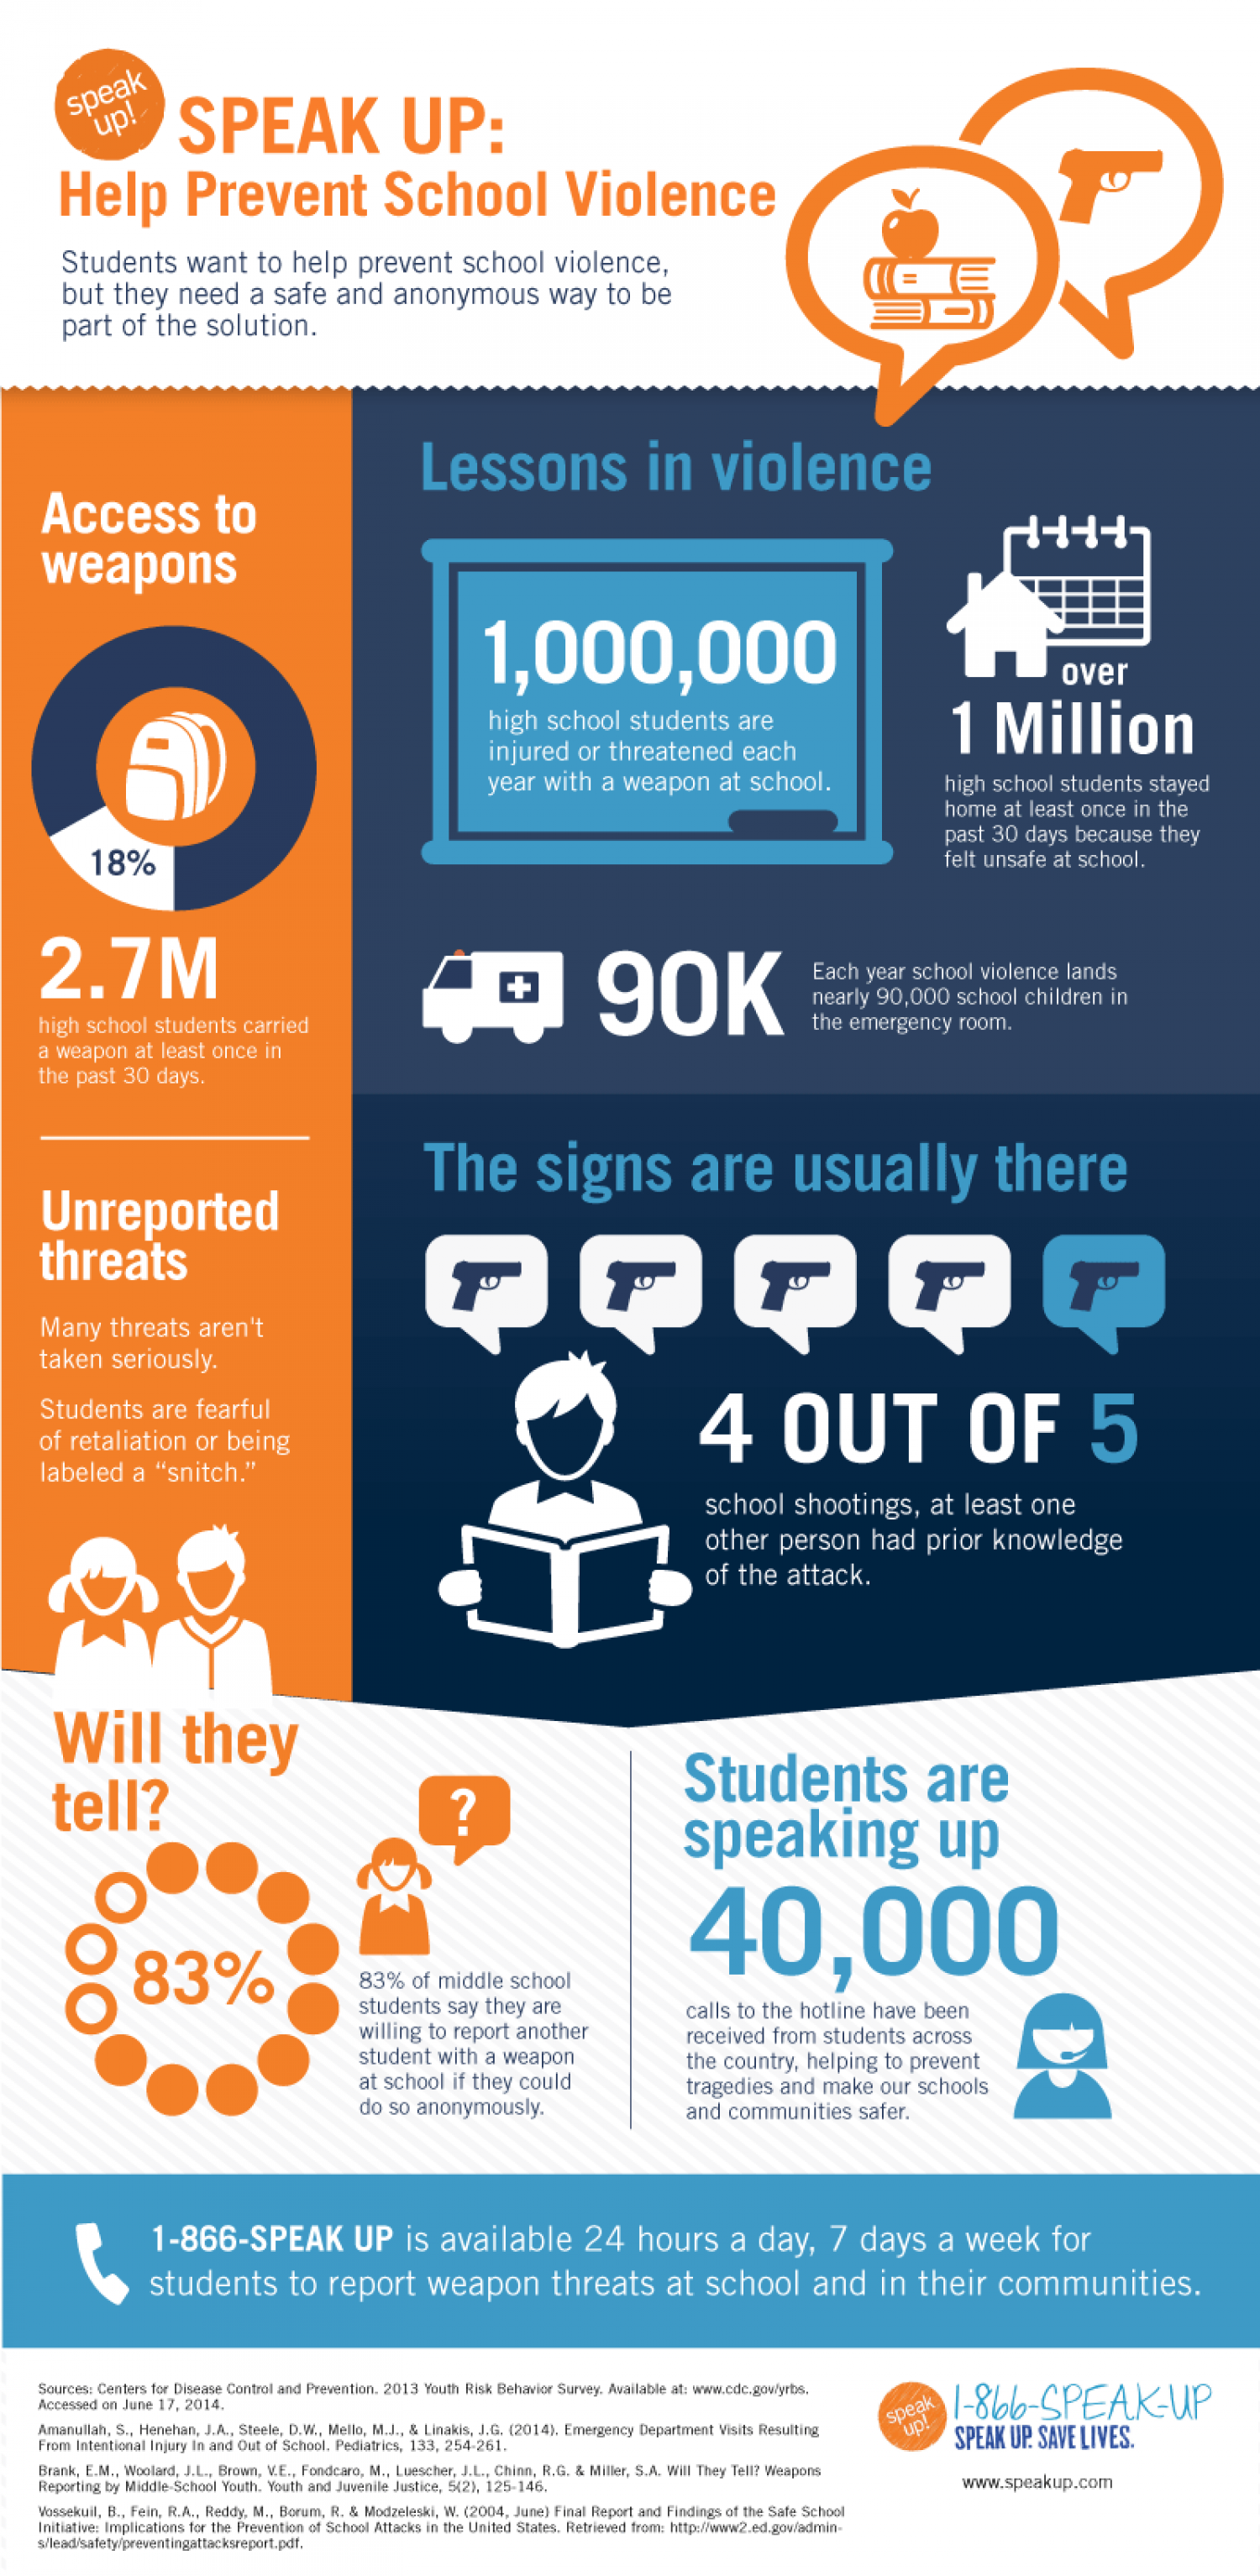 SPEAK UP: Help Prevent School Violence Infographic